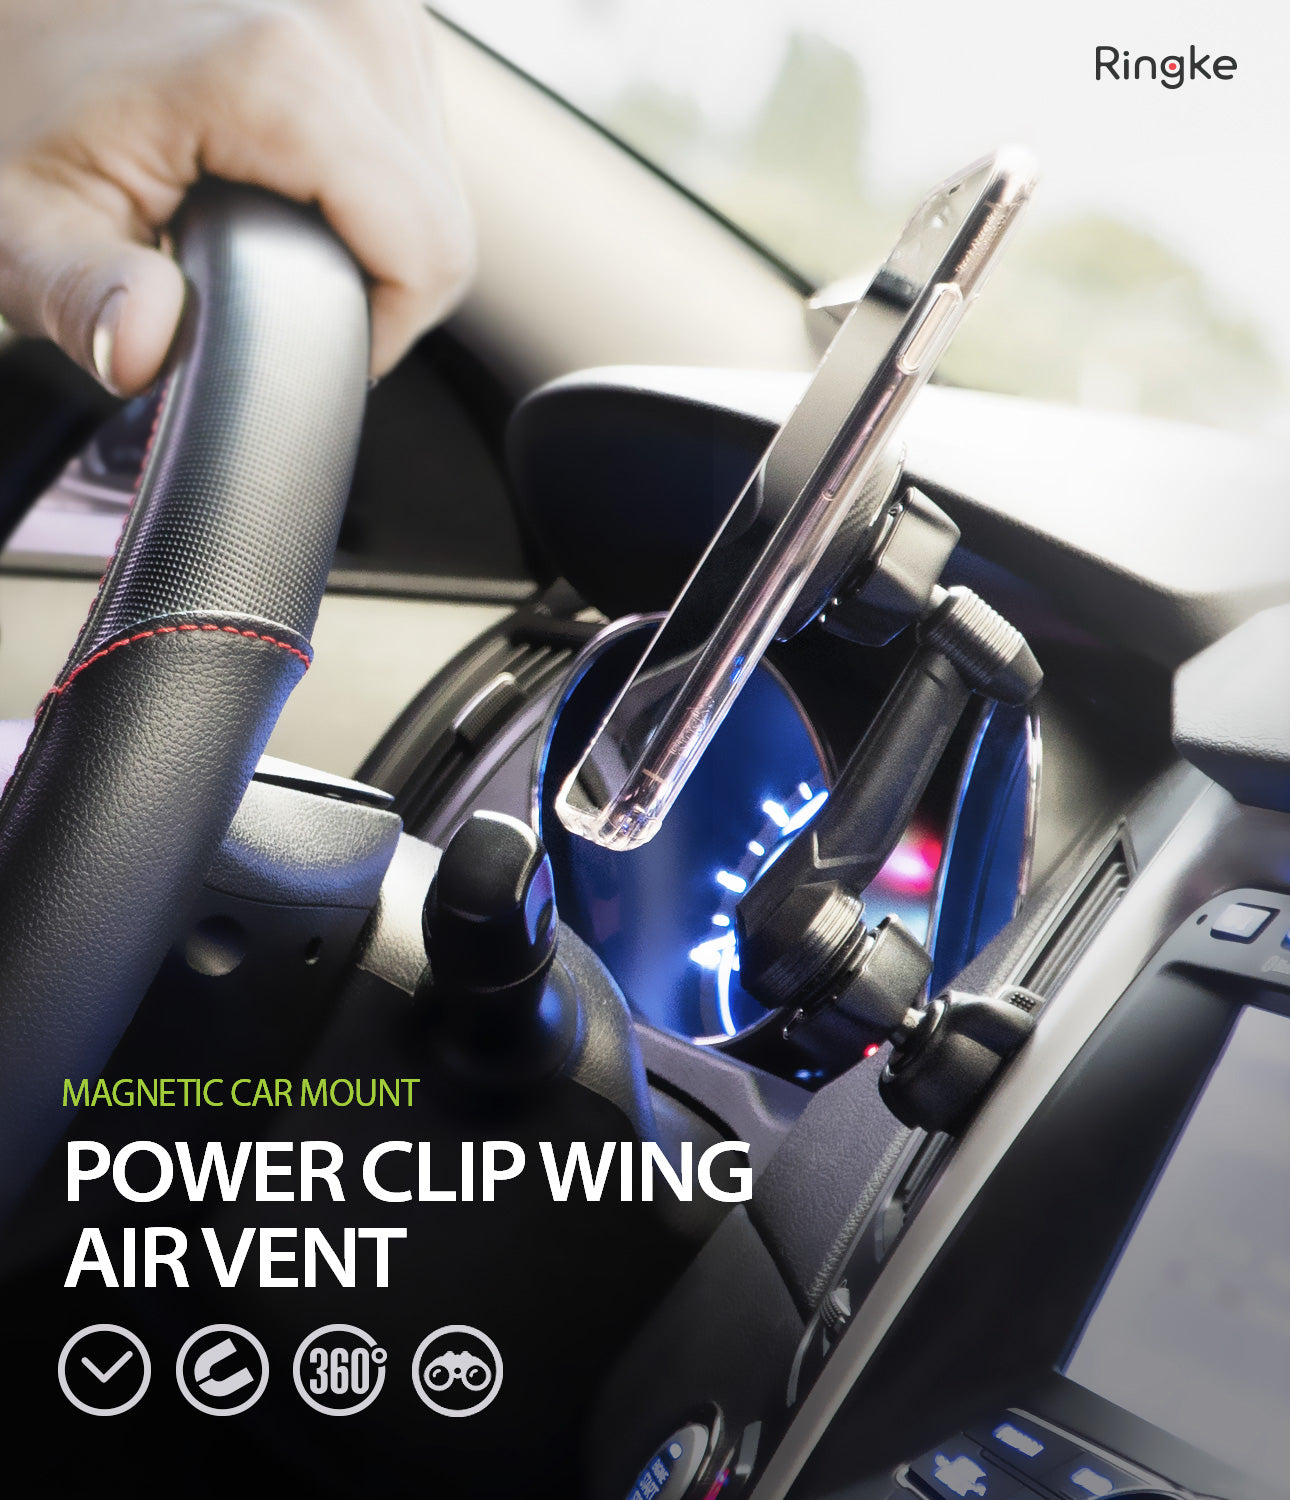 Ringke Power Clip Wing Car Mount phone holder mount air vent with strong magnetic head